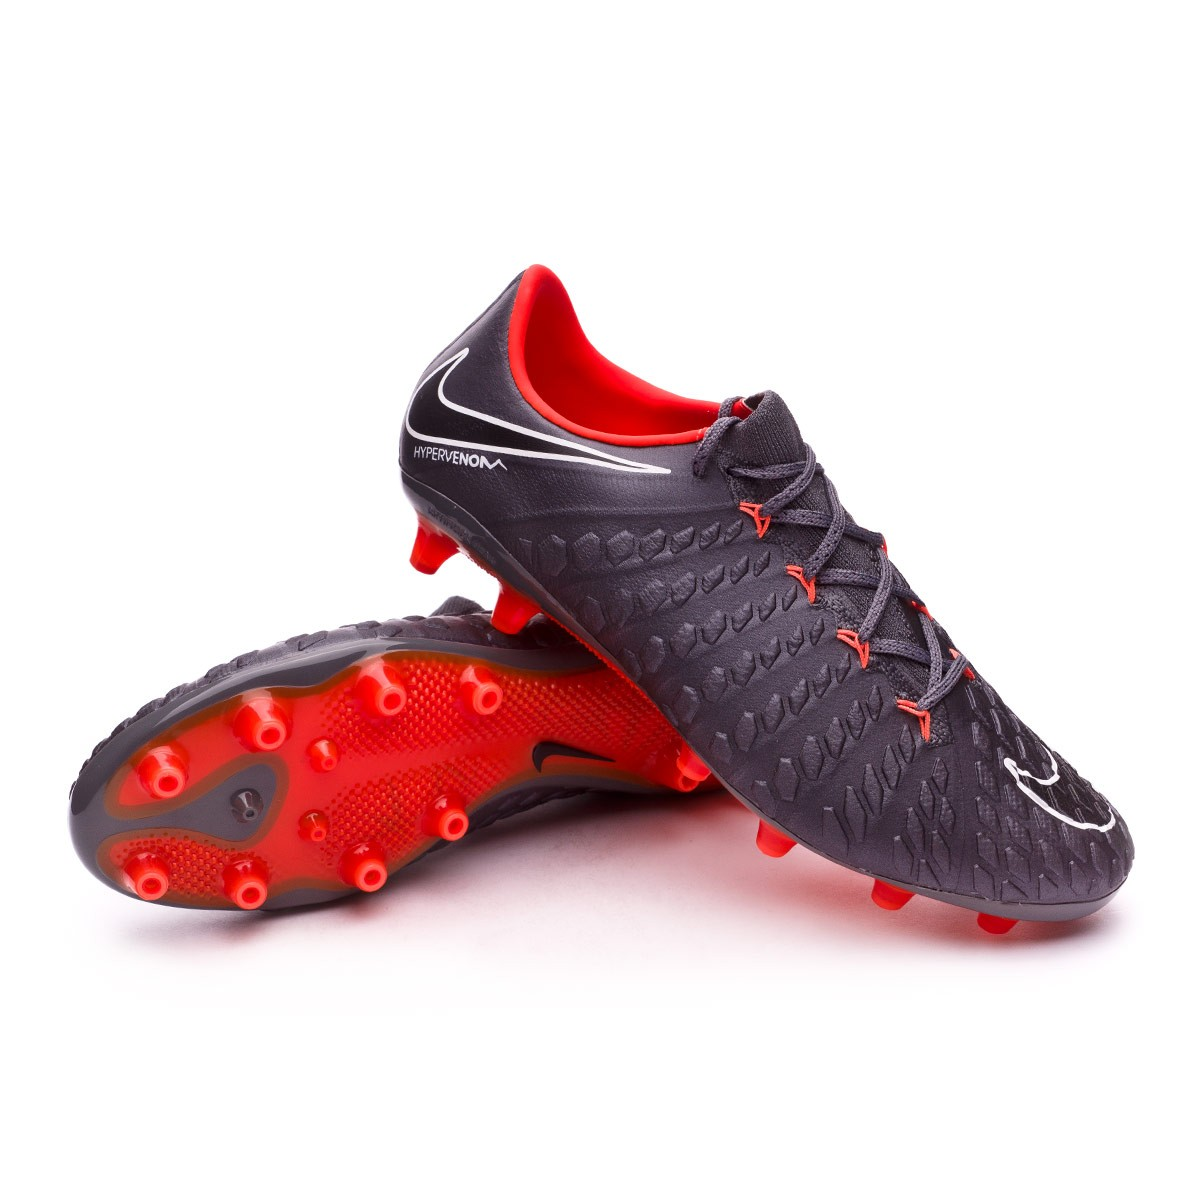 Bota Nike Hypervenom Phantom III Elite AG-Pro Dark grey-Total orange-White